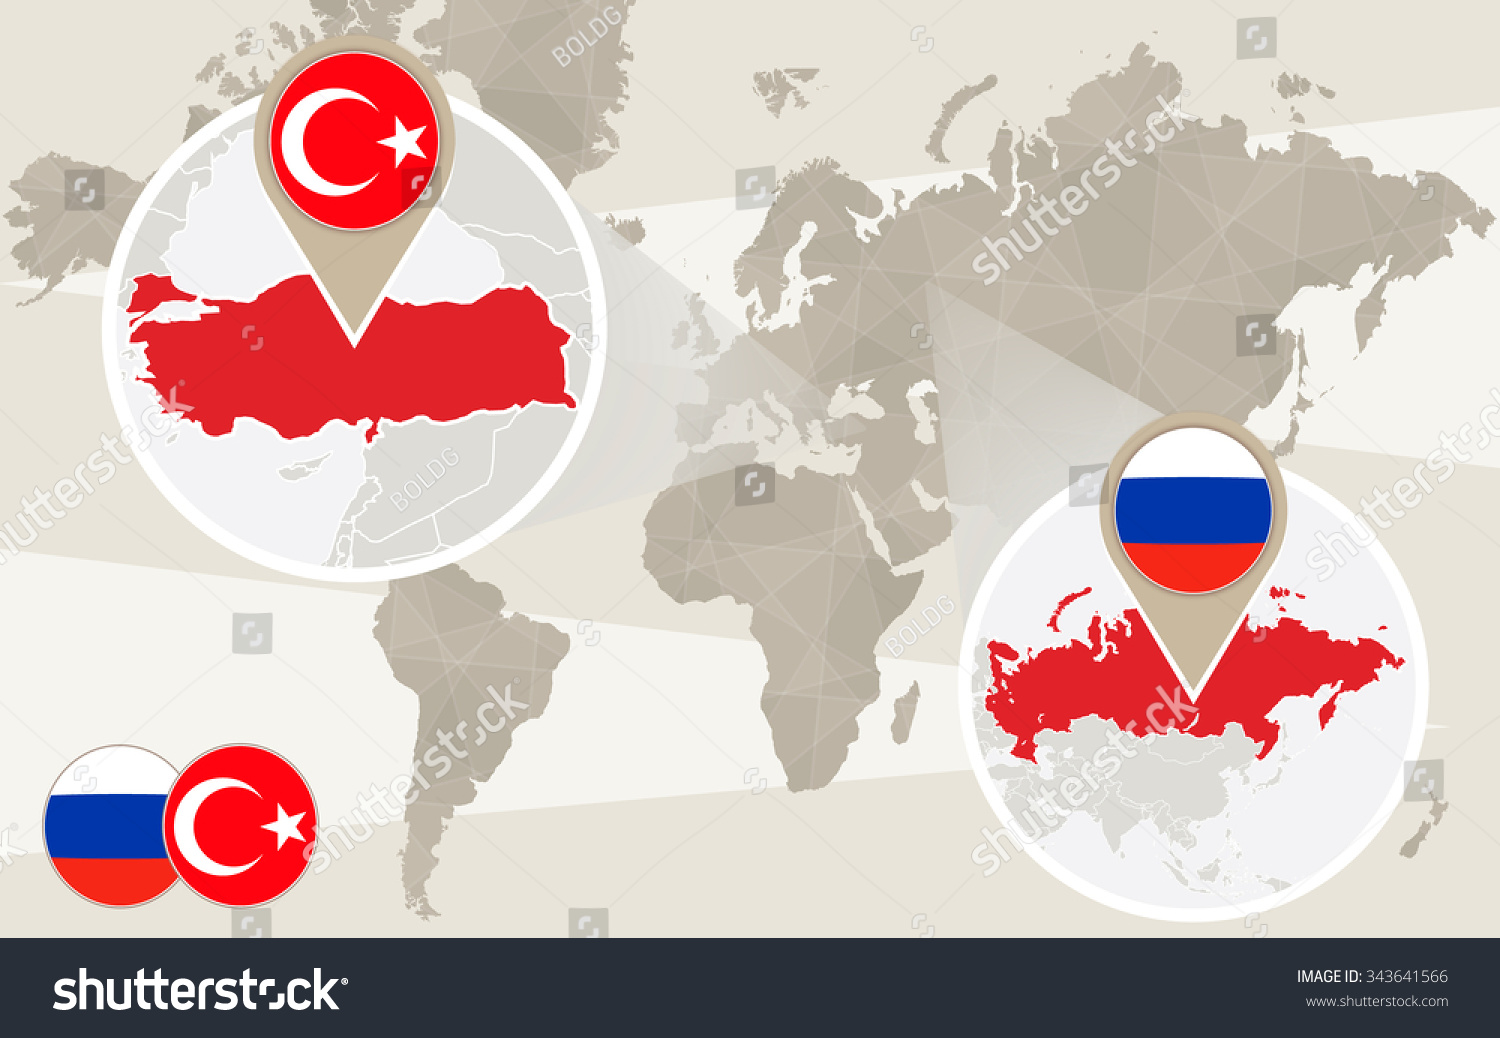 Turkey Map Of World.World Map Zoom On Turkey Russia Stock Vector Royalty Free